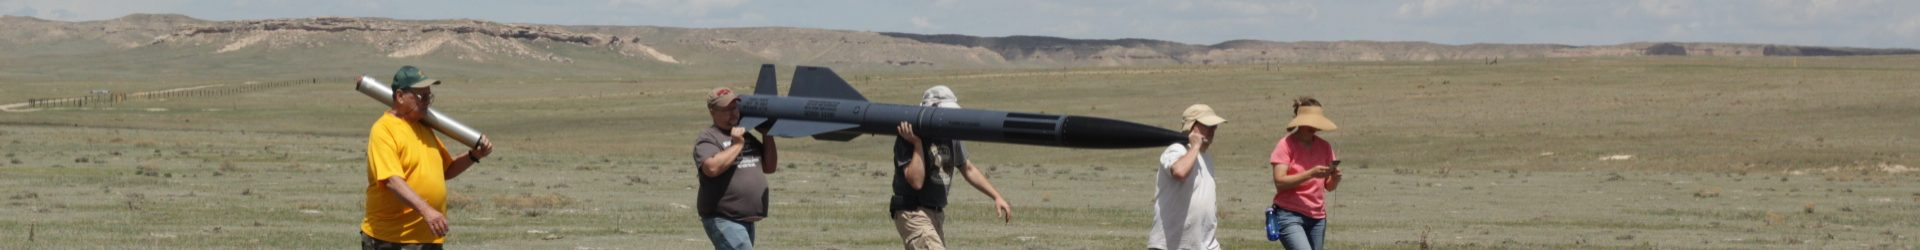 Northern Colorado Rocketry